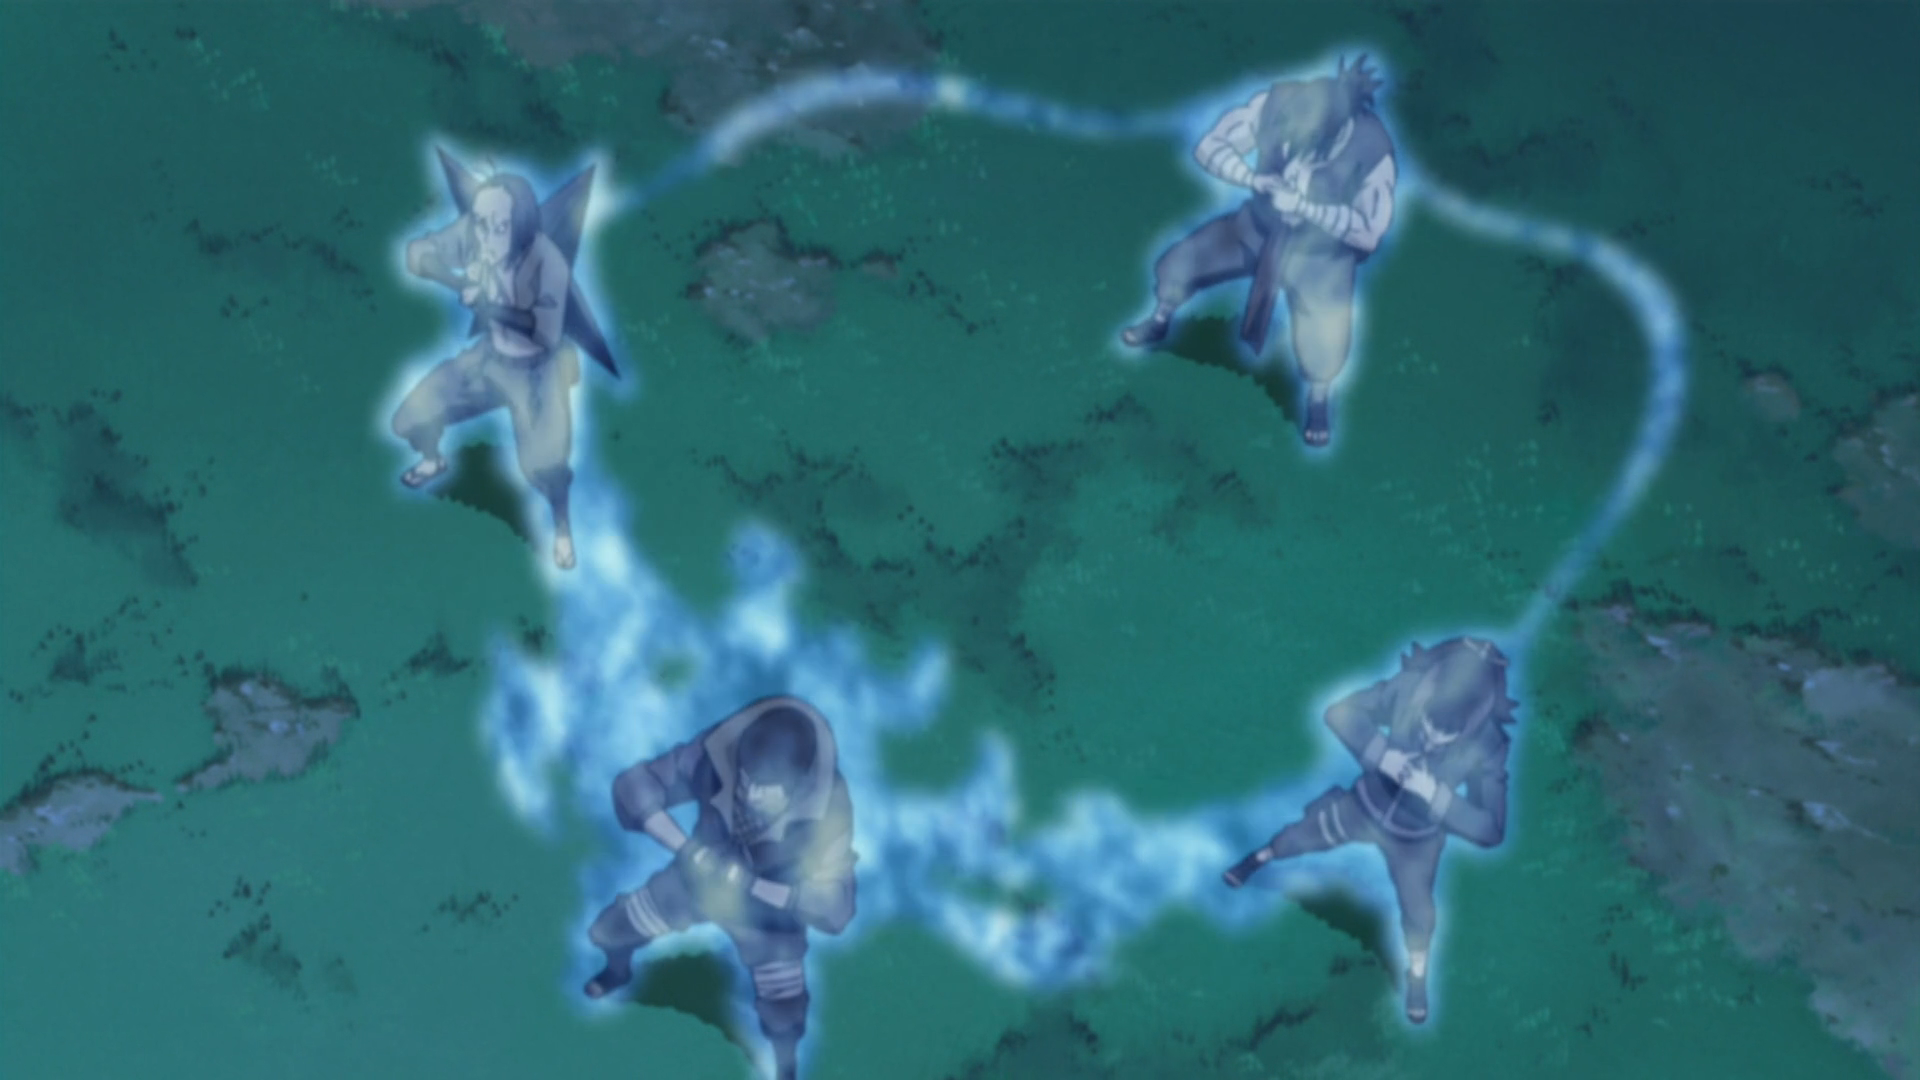 Chakra Transfer Technique | Narutopedia | FANDOM powered by Wikia